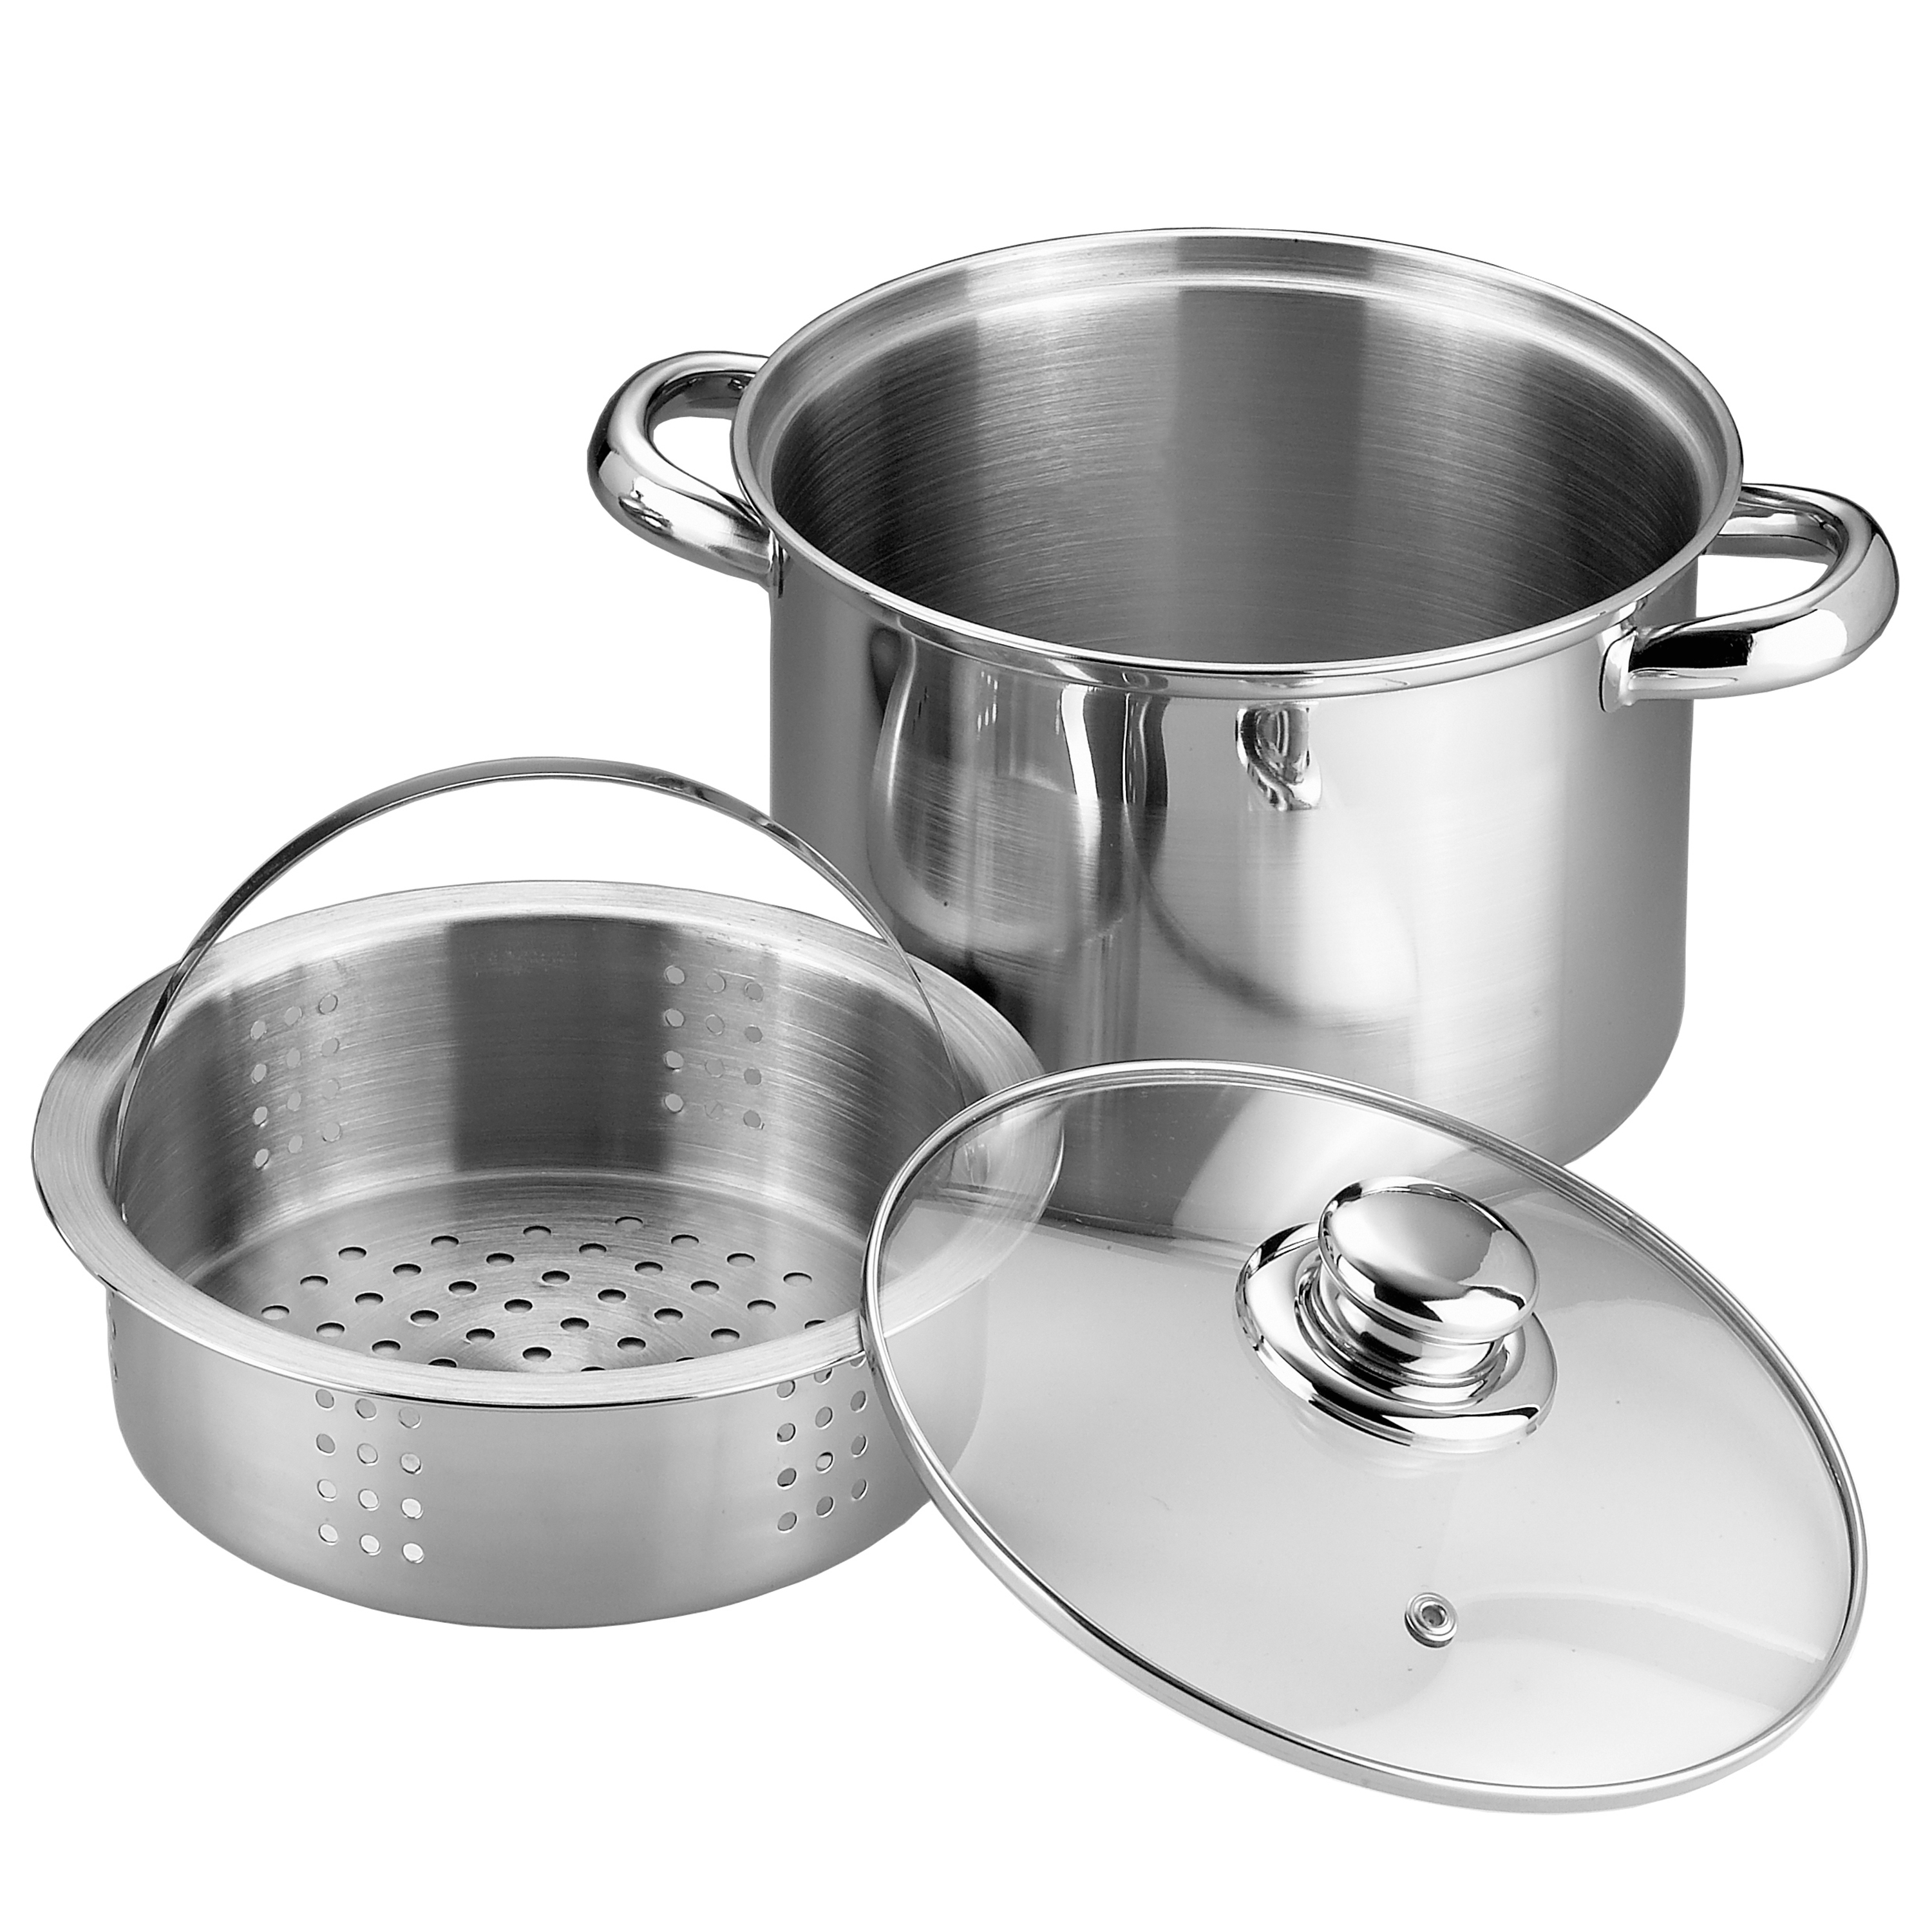 20CM PASTA POT AND STEAMER (SS-B024)